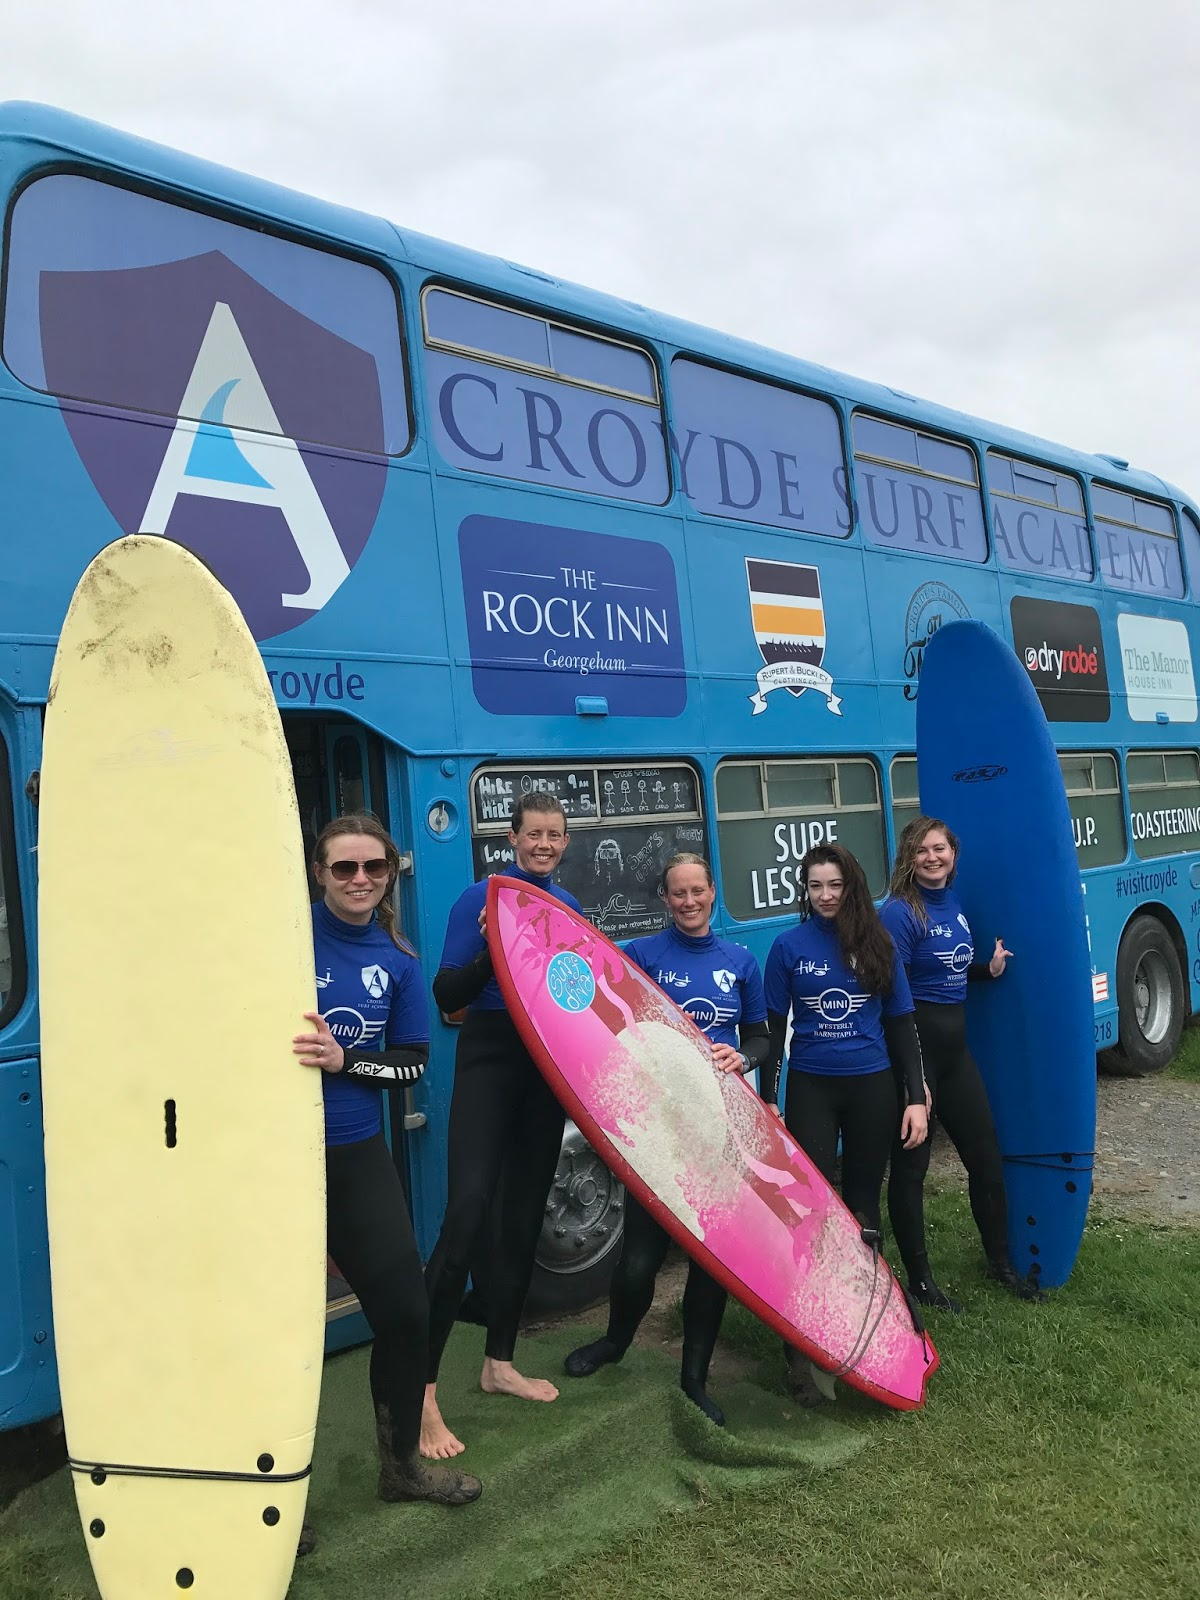 Resilient Women Adventures review, lifestyle blog, travel bloggers, Croyde Surf Academy